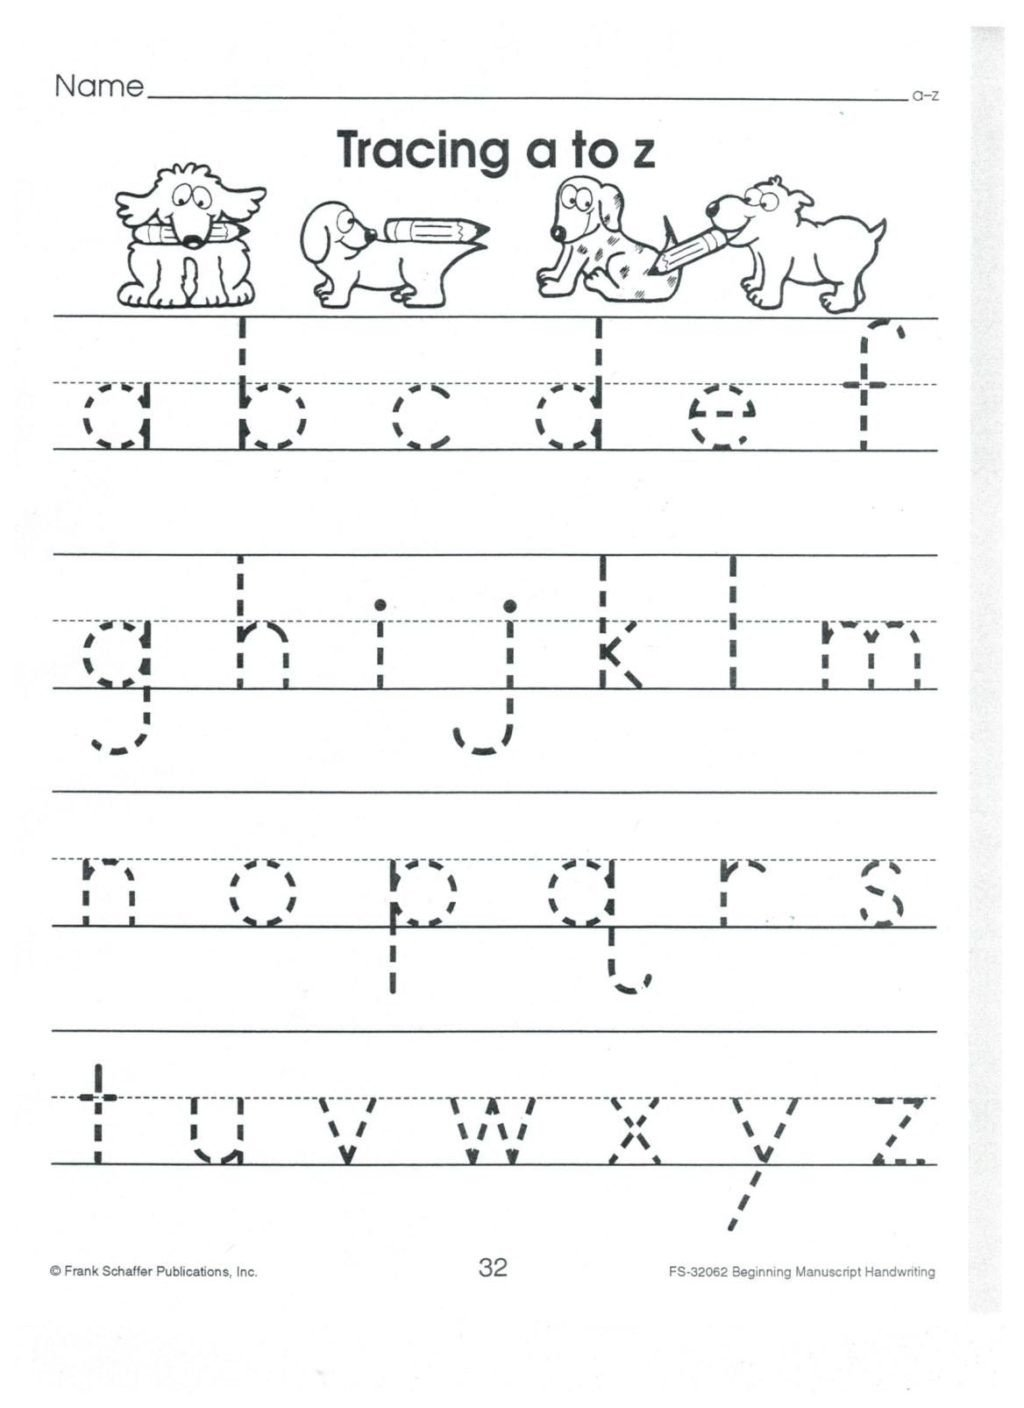 english print abc a to z lower case 001 alphabet tracing